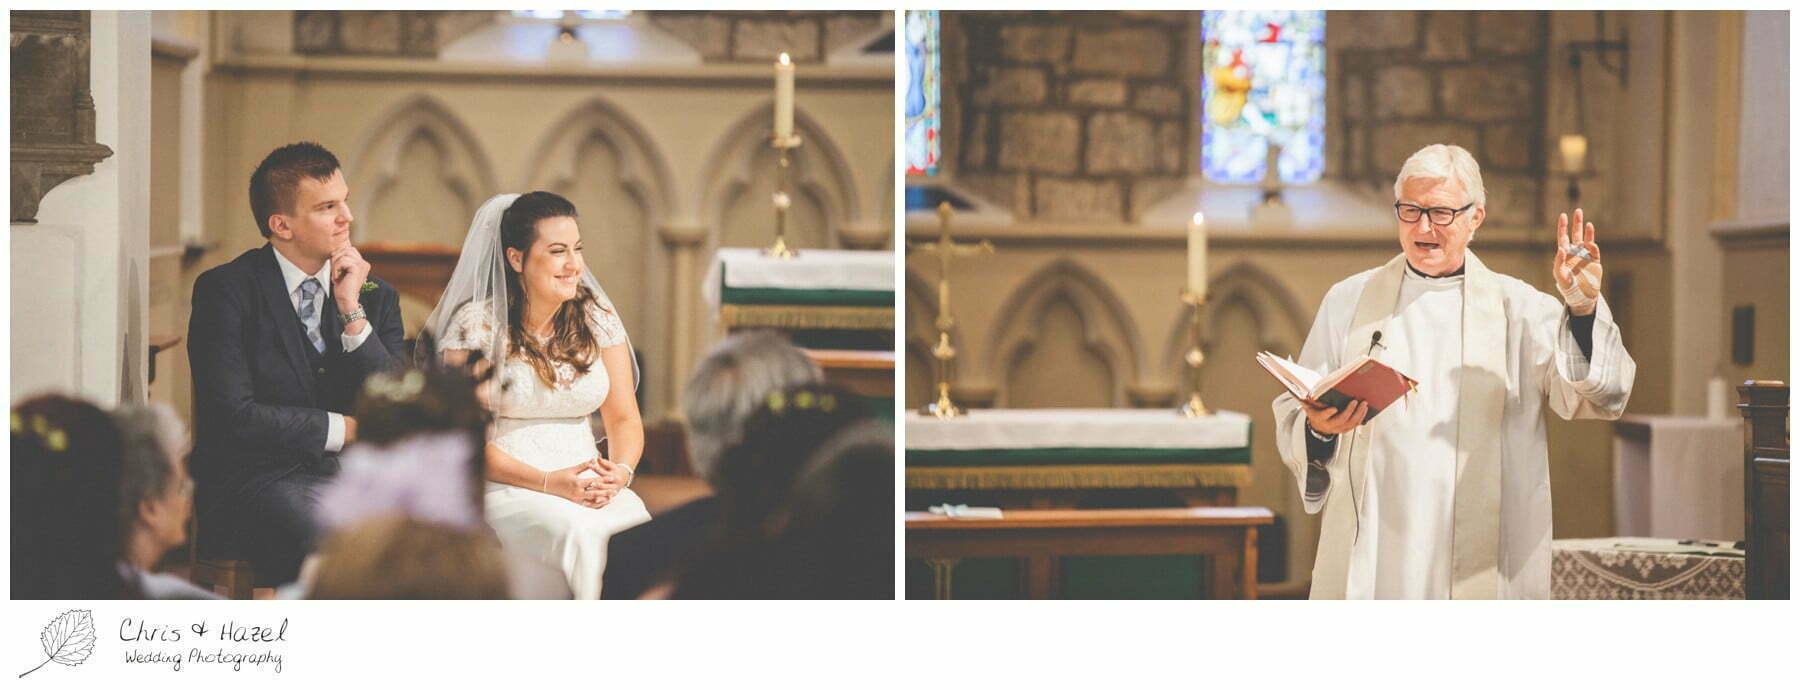 bride and groom at altar, st marys church, wedding, south milford Wedding Photographer, the engine shed, Wedding Photography wetherby, Chris and Hazel Wedding Photography, stevie pollard, stevie standerline, paul standerline,